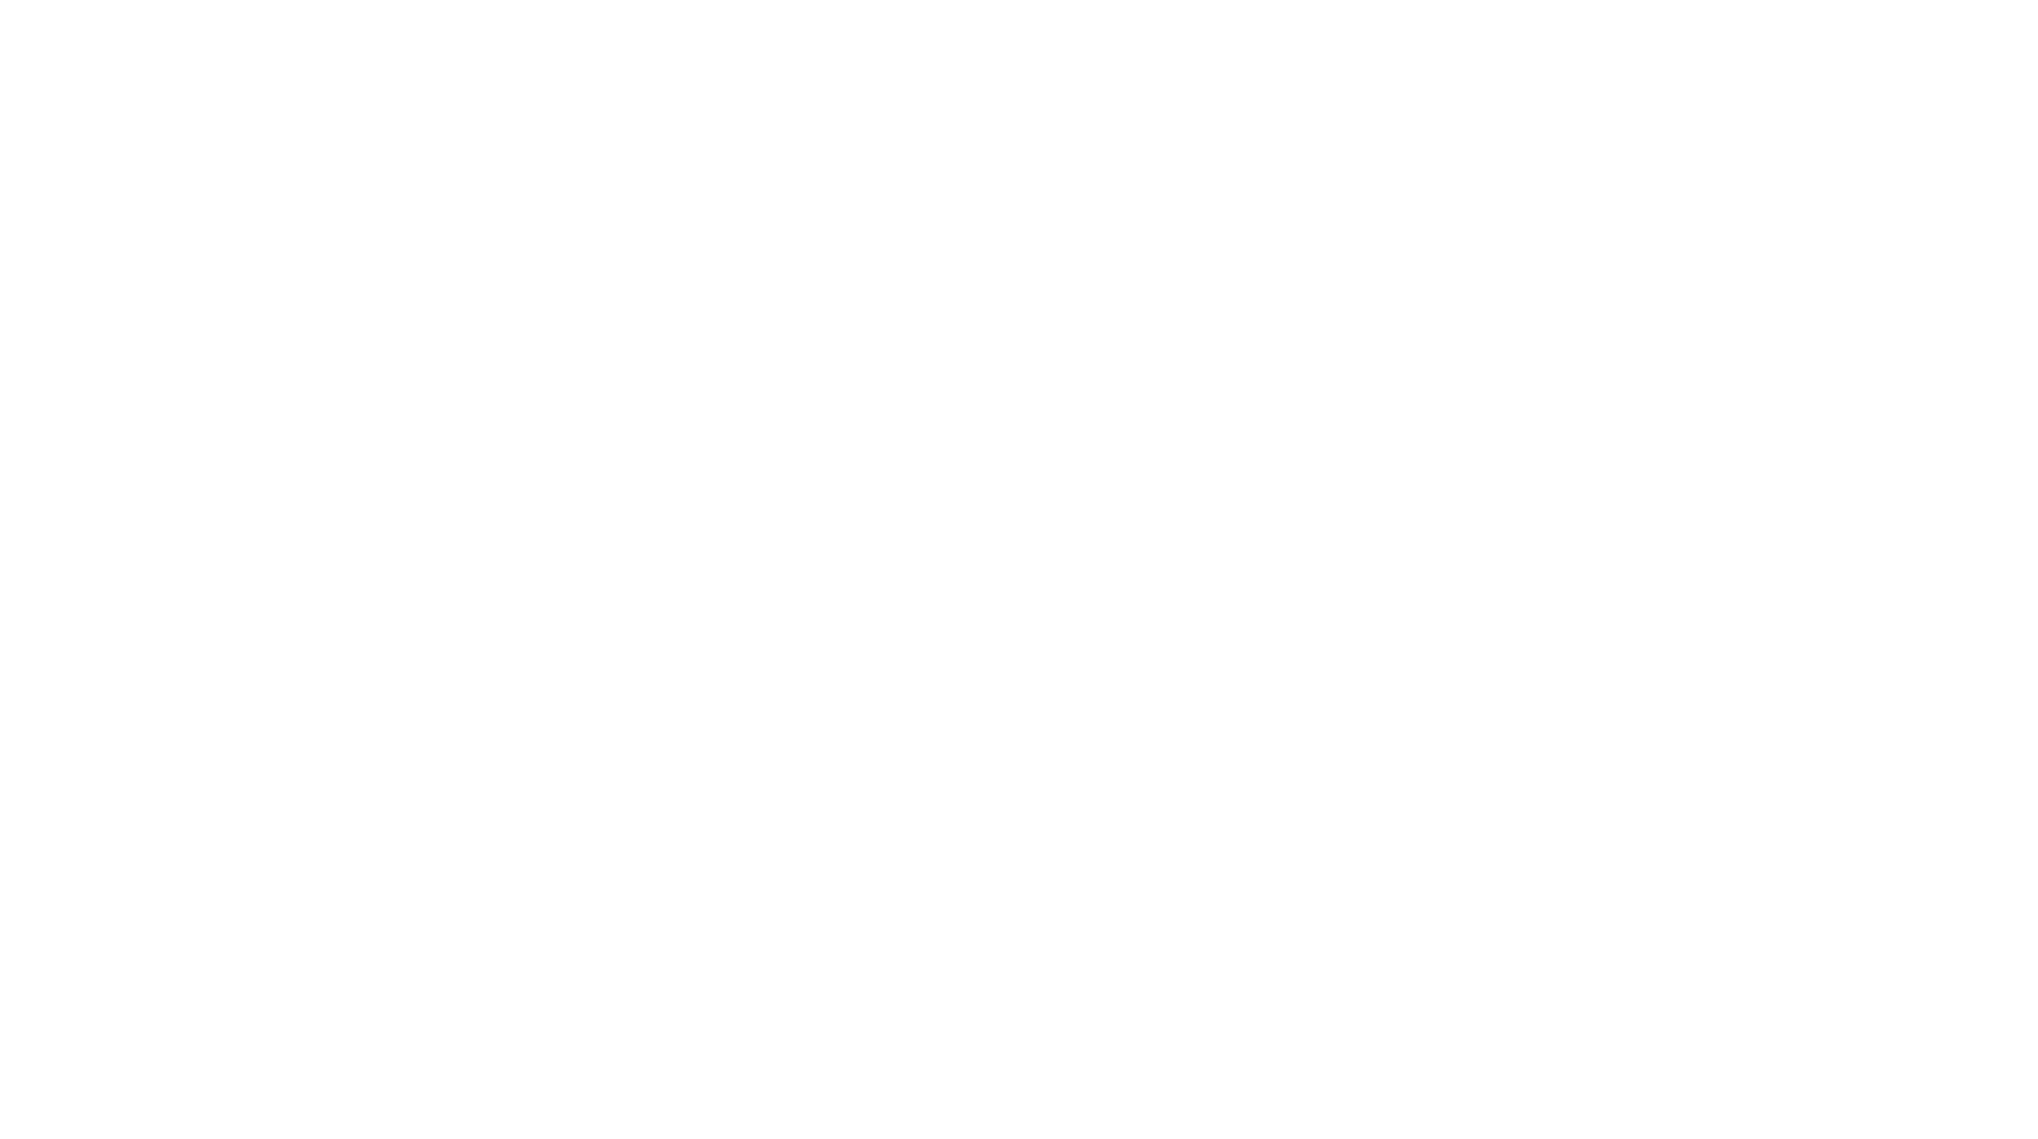 THE SALT TRAIL - Winner Best Cinematography 2016 BBSFF